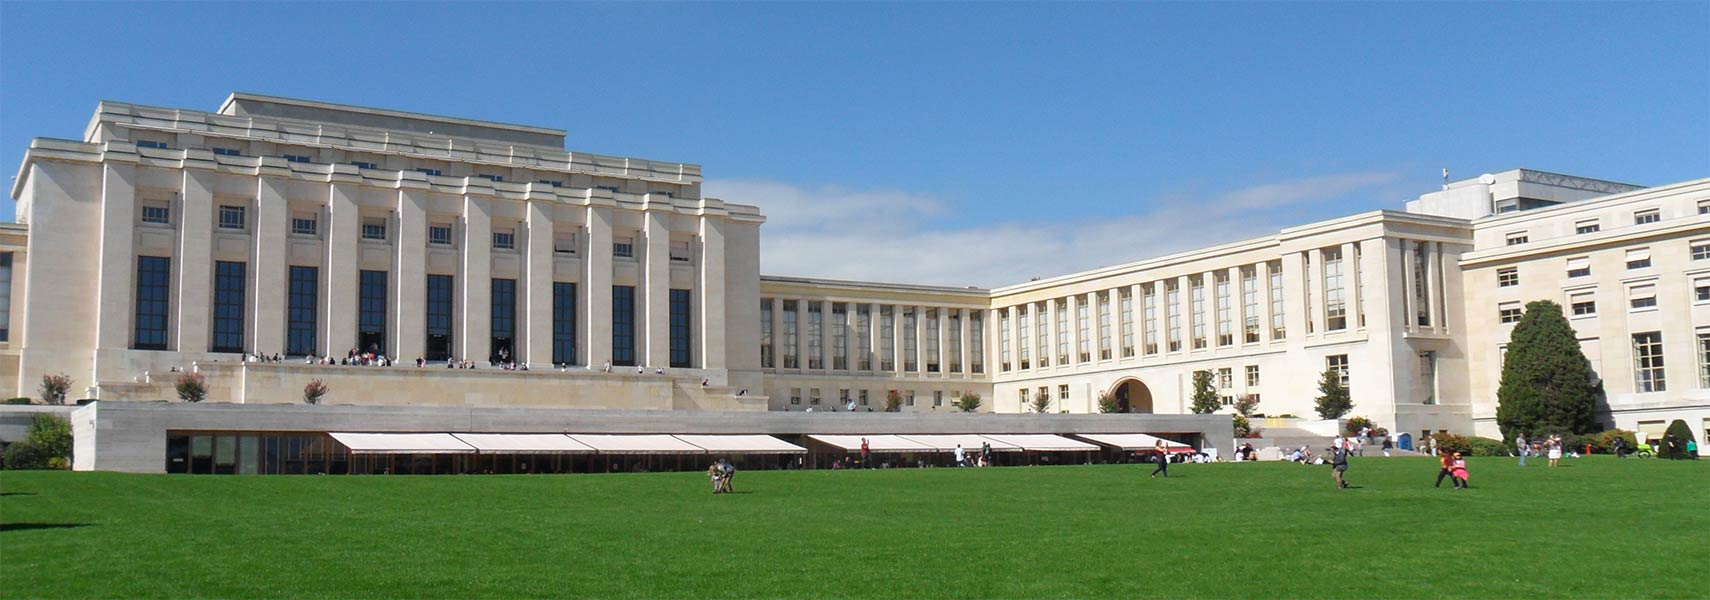 Palace of Nations, the United Nations Office at Geneva